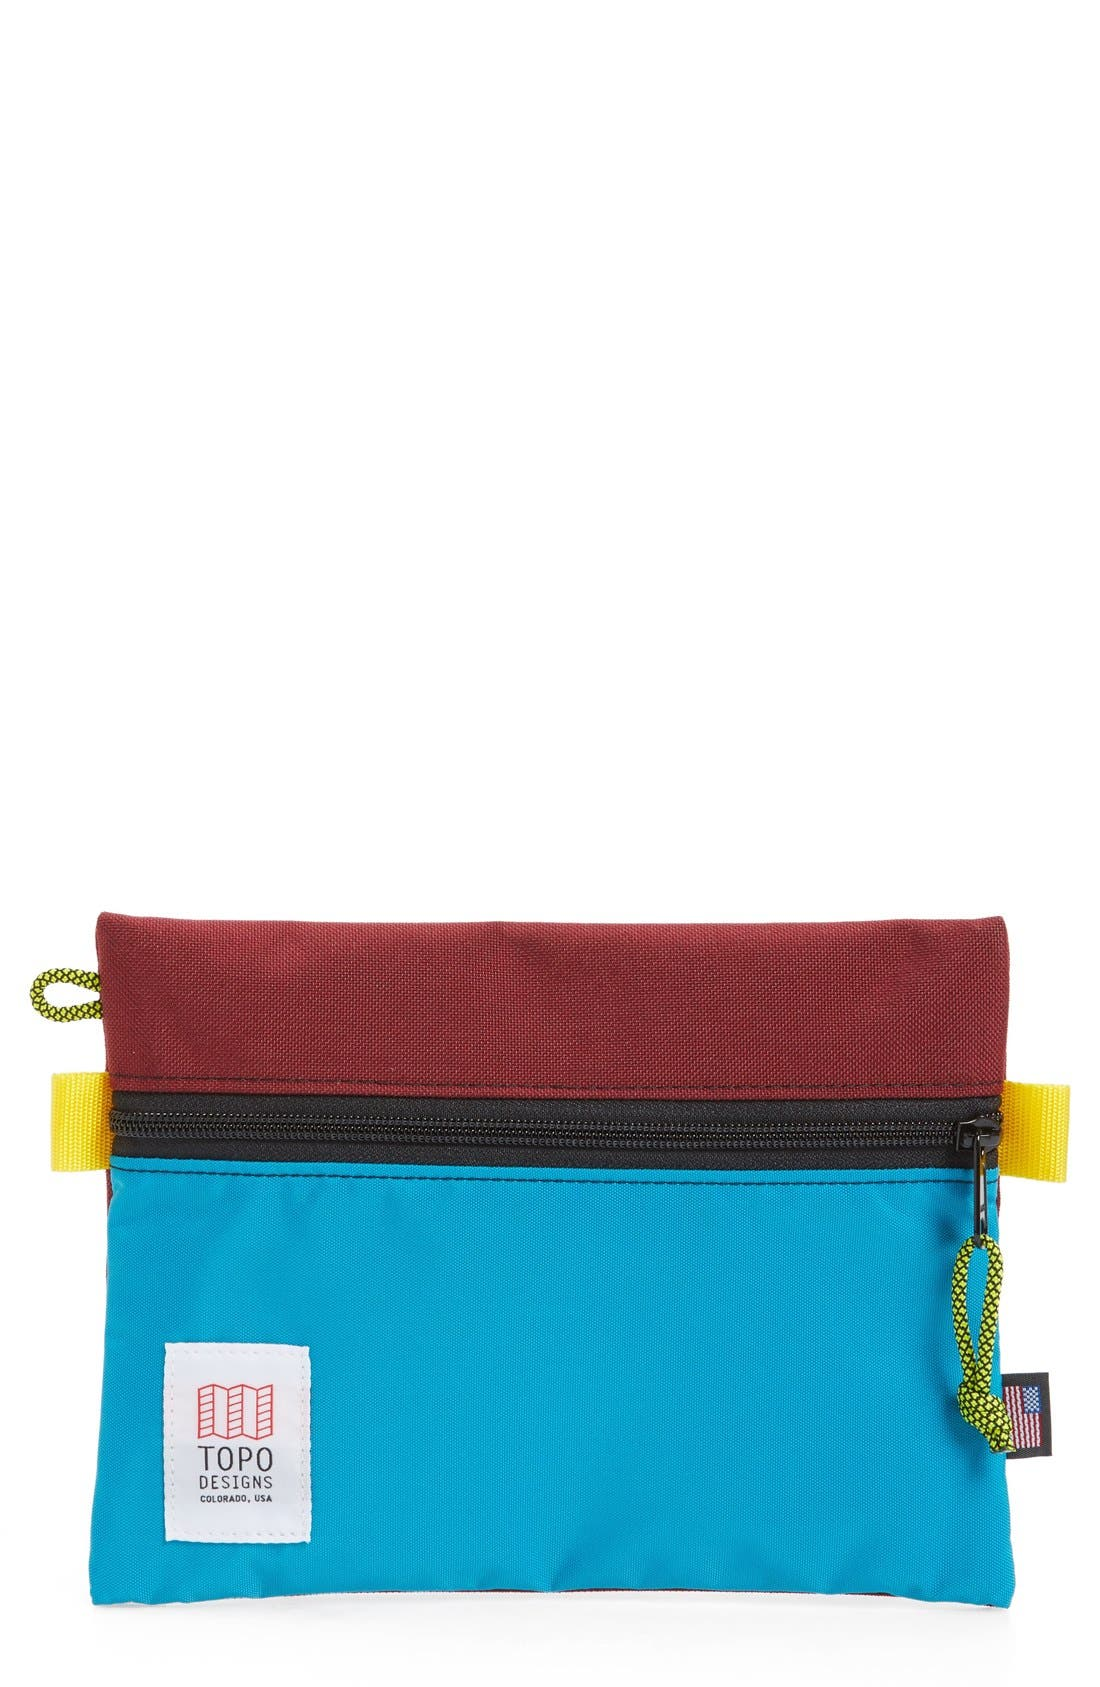 TopoDesigns Accessory Bag, Main, color, BURGUNDY/ TURQUOISE